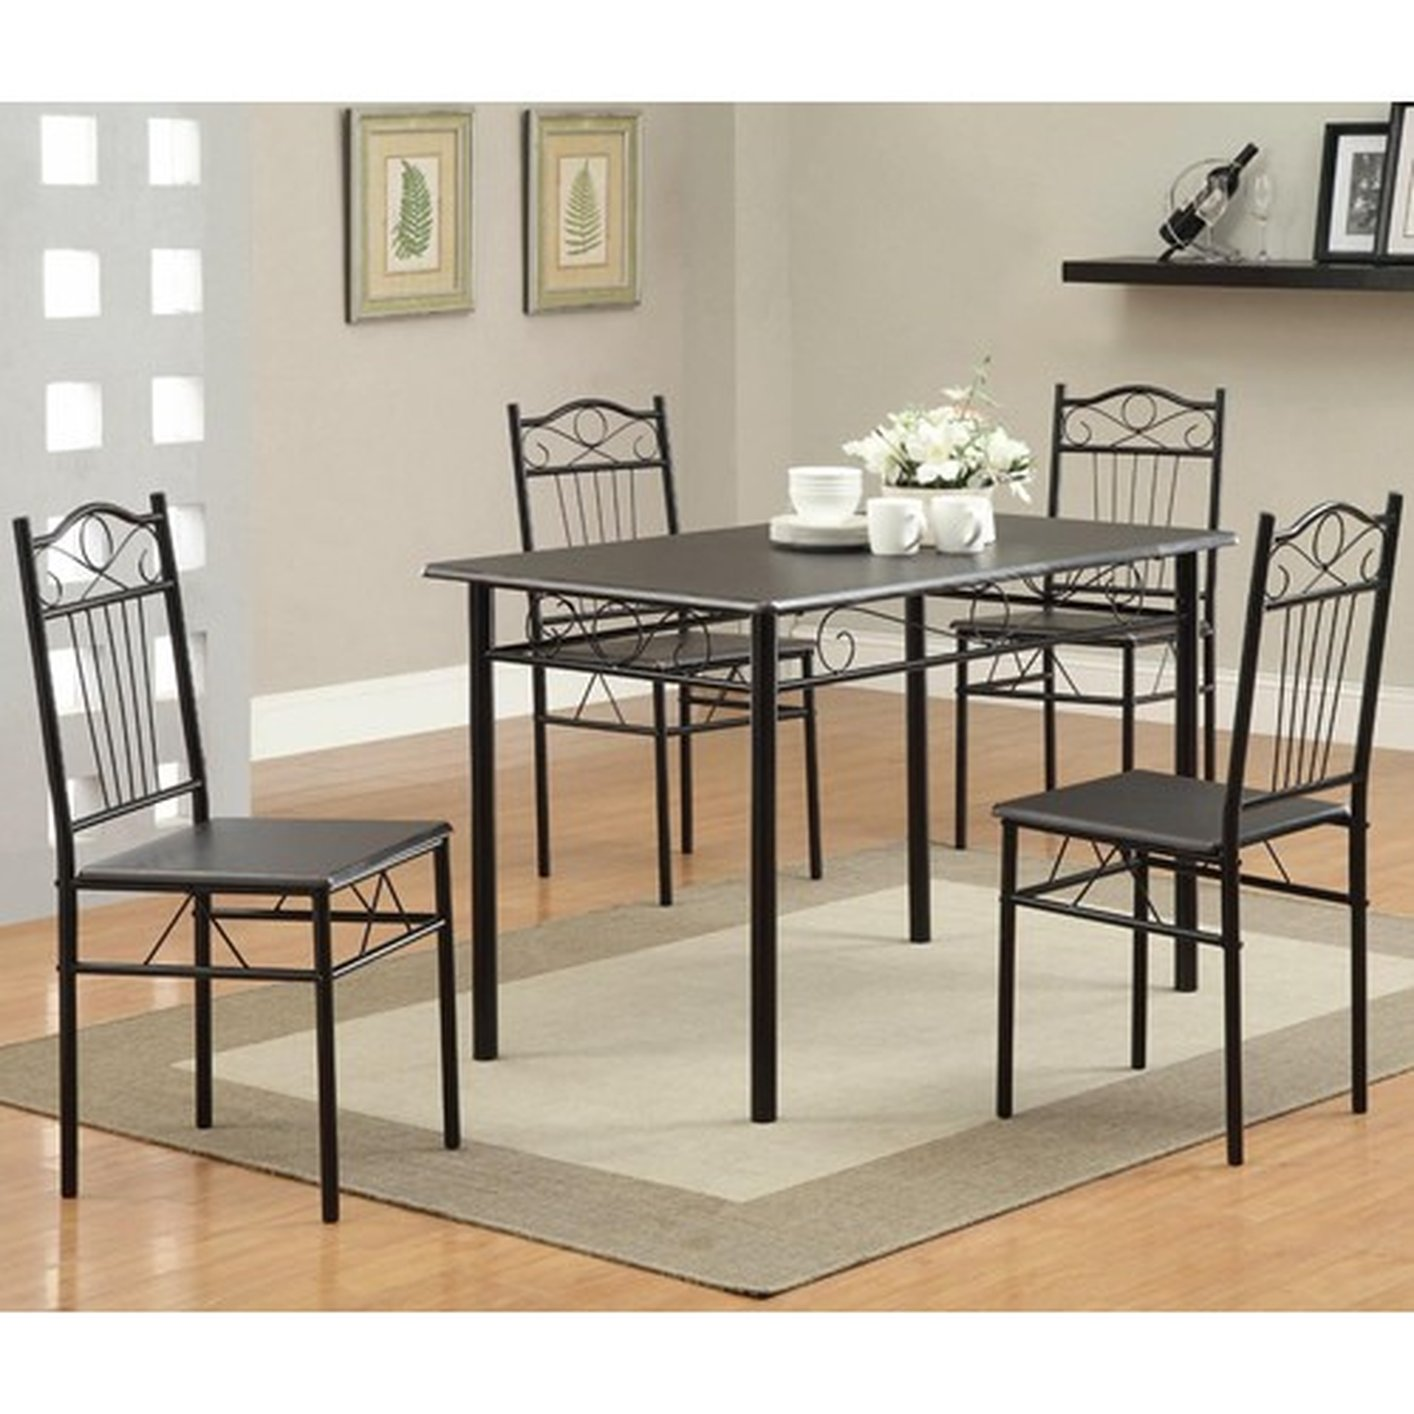 dining new ikea black table of unique room chairs set